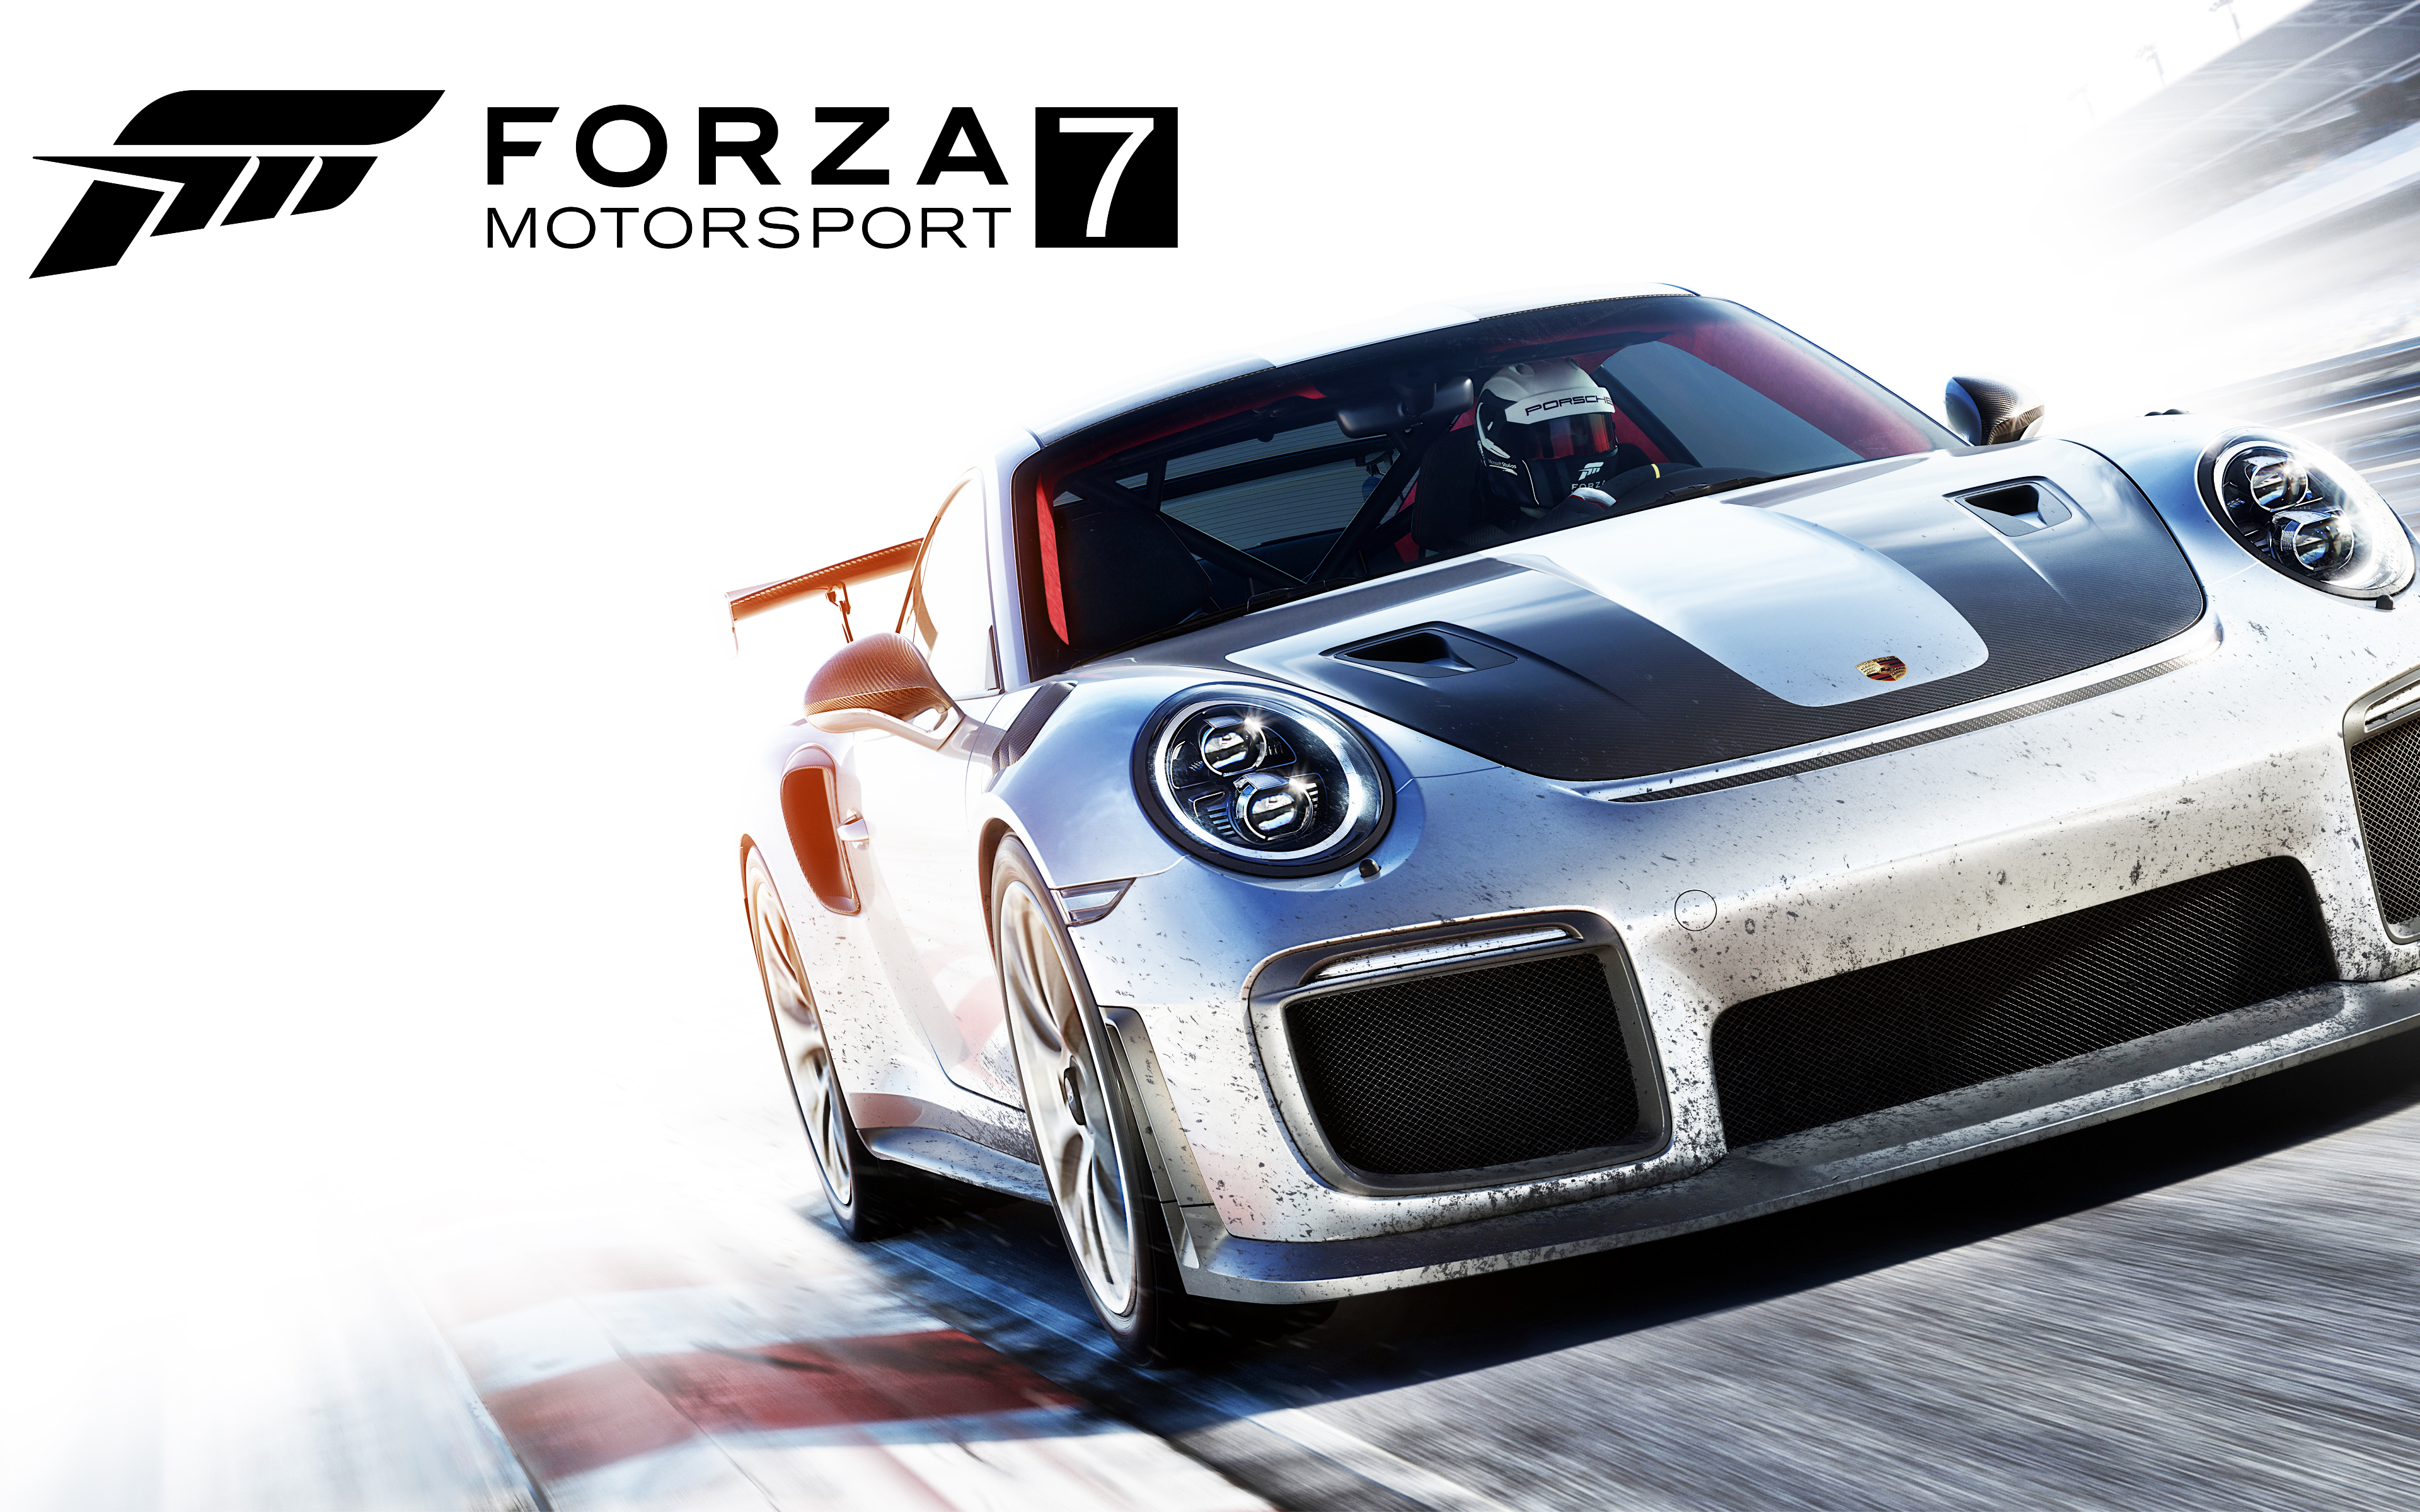 Forza Motorsport 7 Wallpapers Ultra Hd Gaming Backgrounds: Wonderful Forza Motorsport 7 Wallpaper